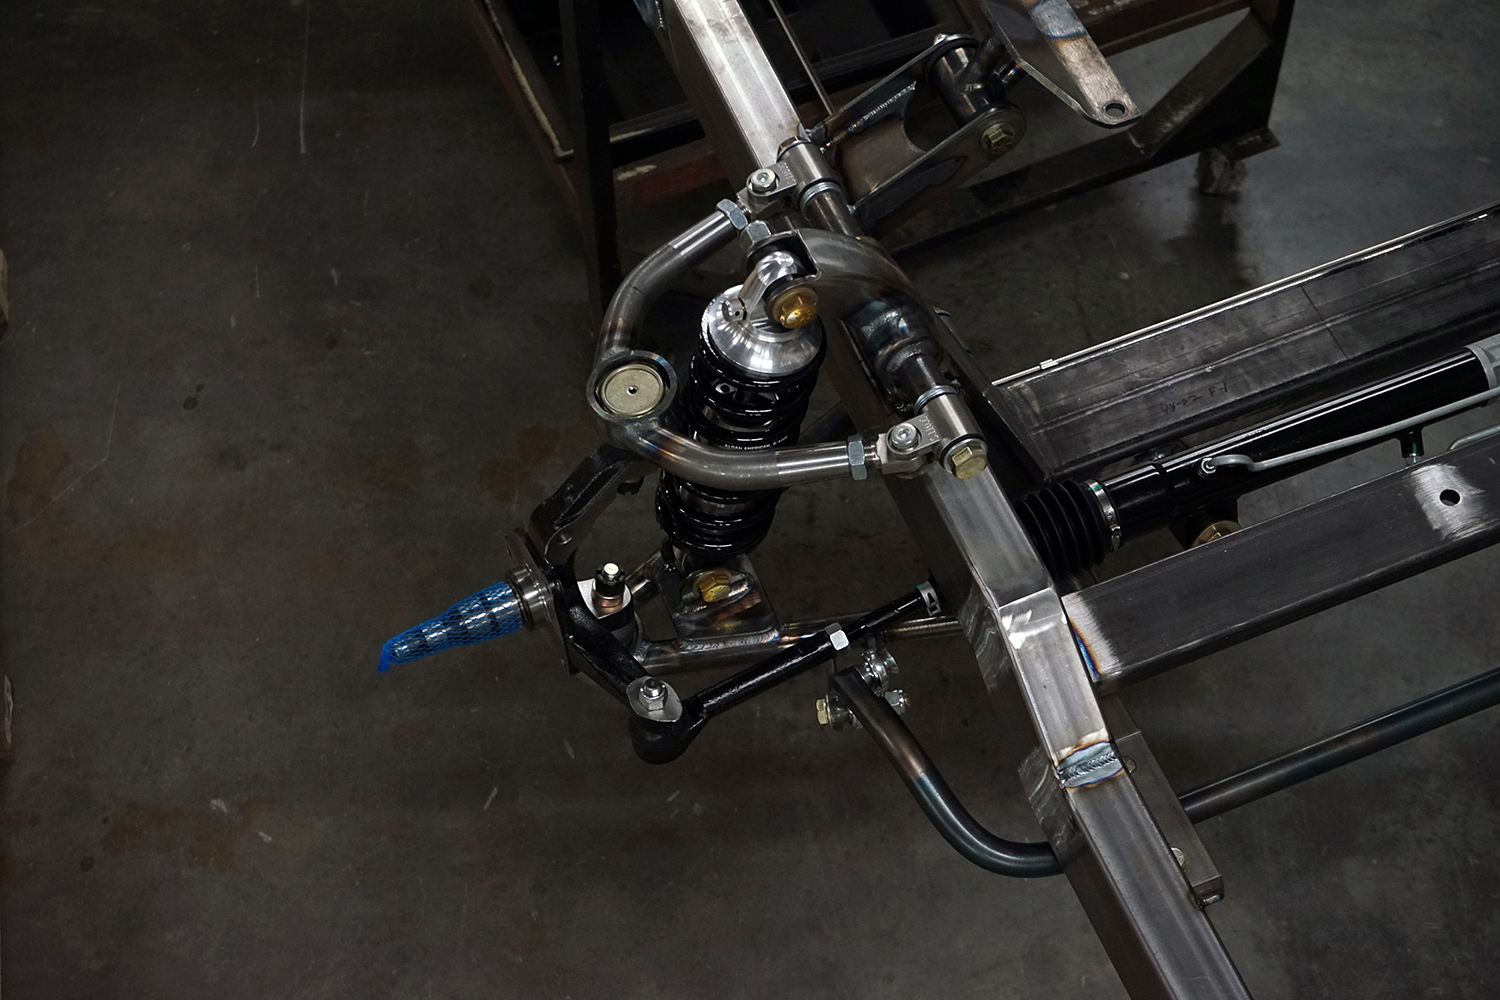 SCOTTS-COILOVER-48-52-F1-CHASSIS-02